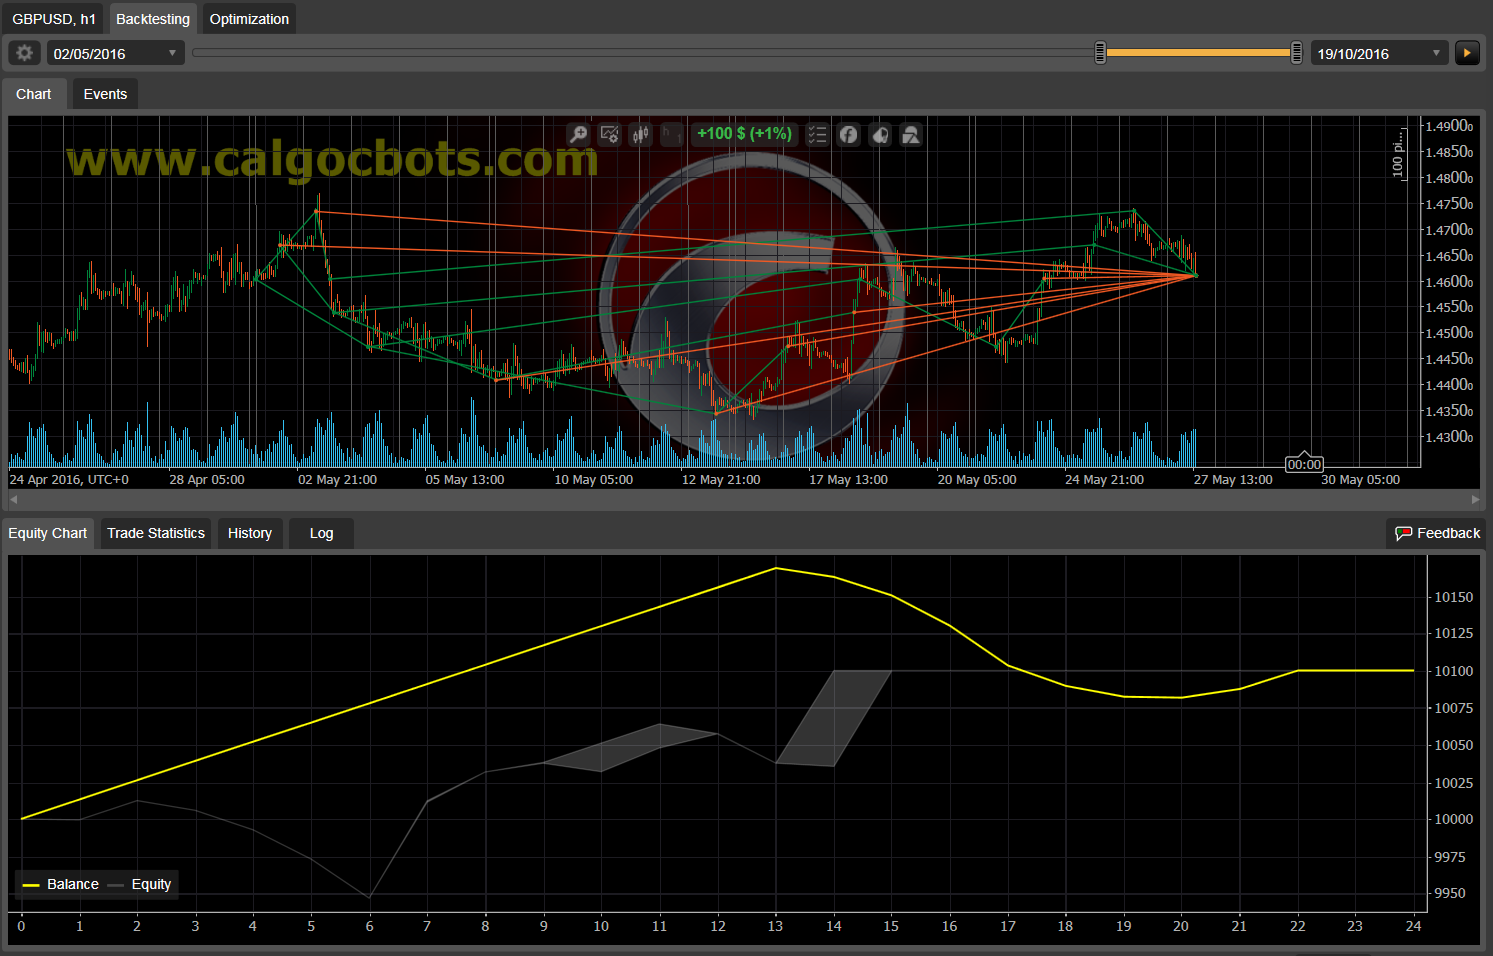 Dual Grid Hedge GBP USD 1h cAlgo cBots cTrader 1k 100 50 100 - 10